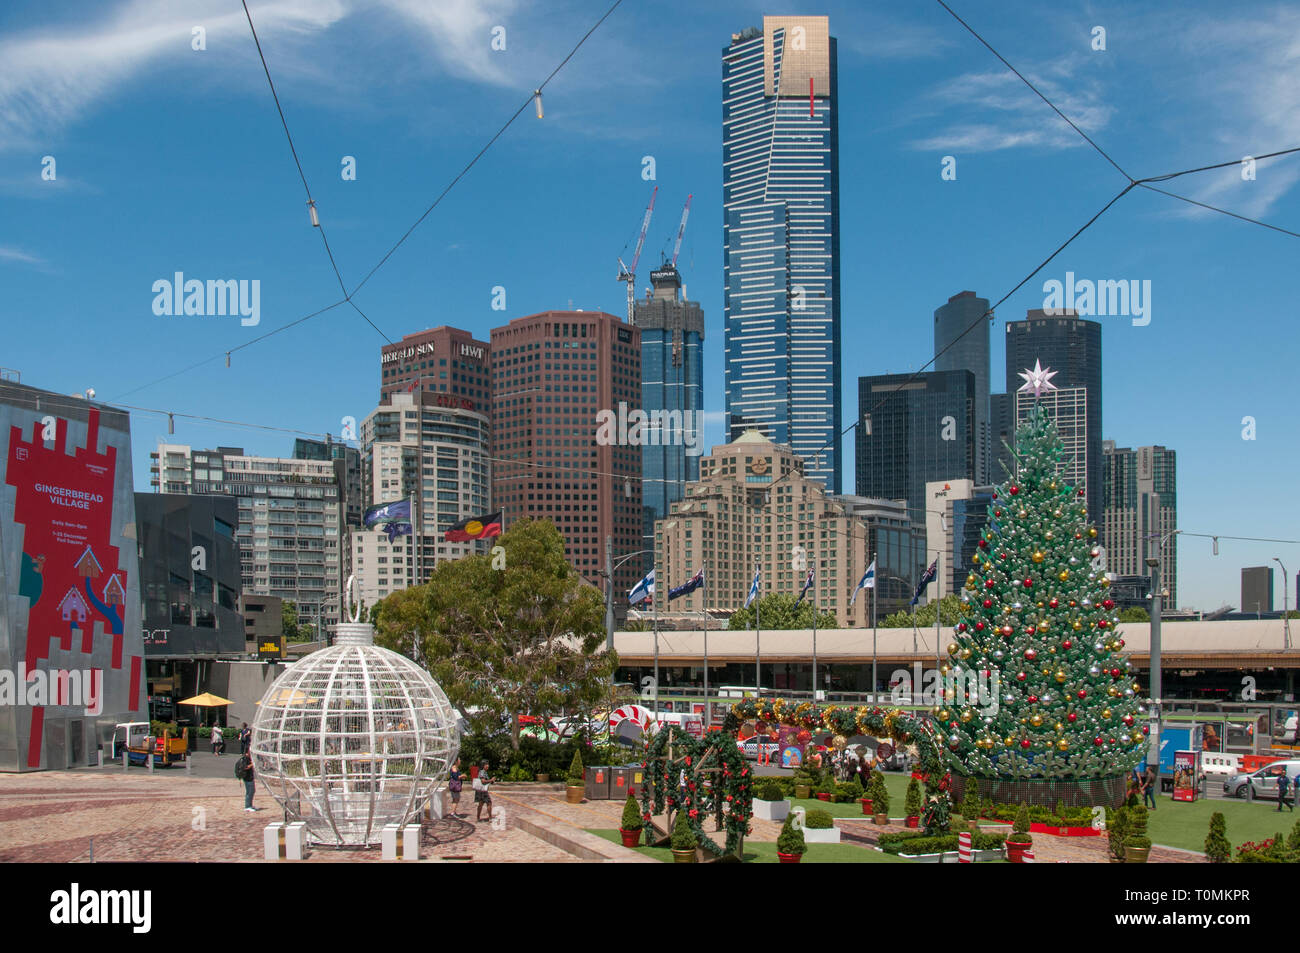 Christmas at Federation Square, Melbourne, Australia, December 2018 Stock Photo